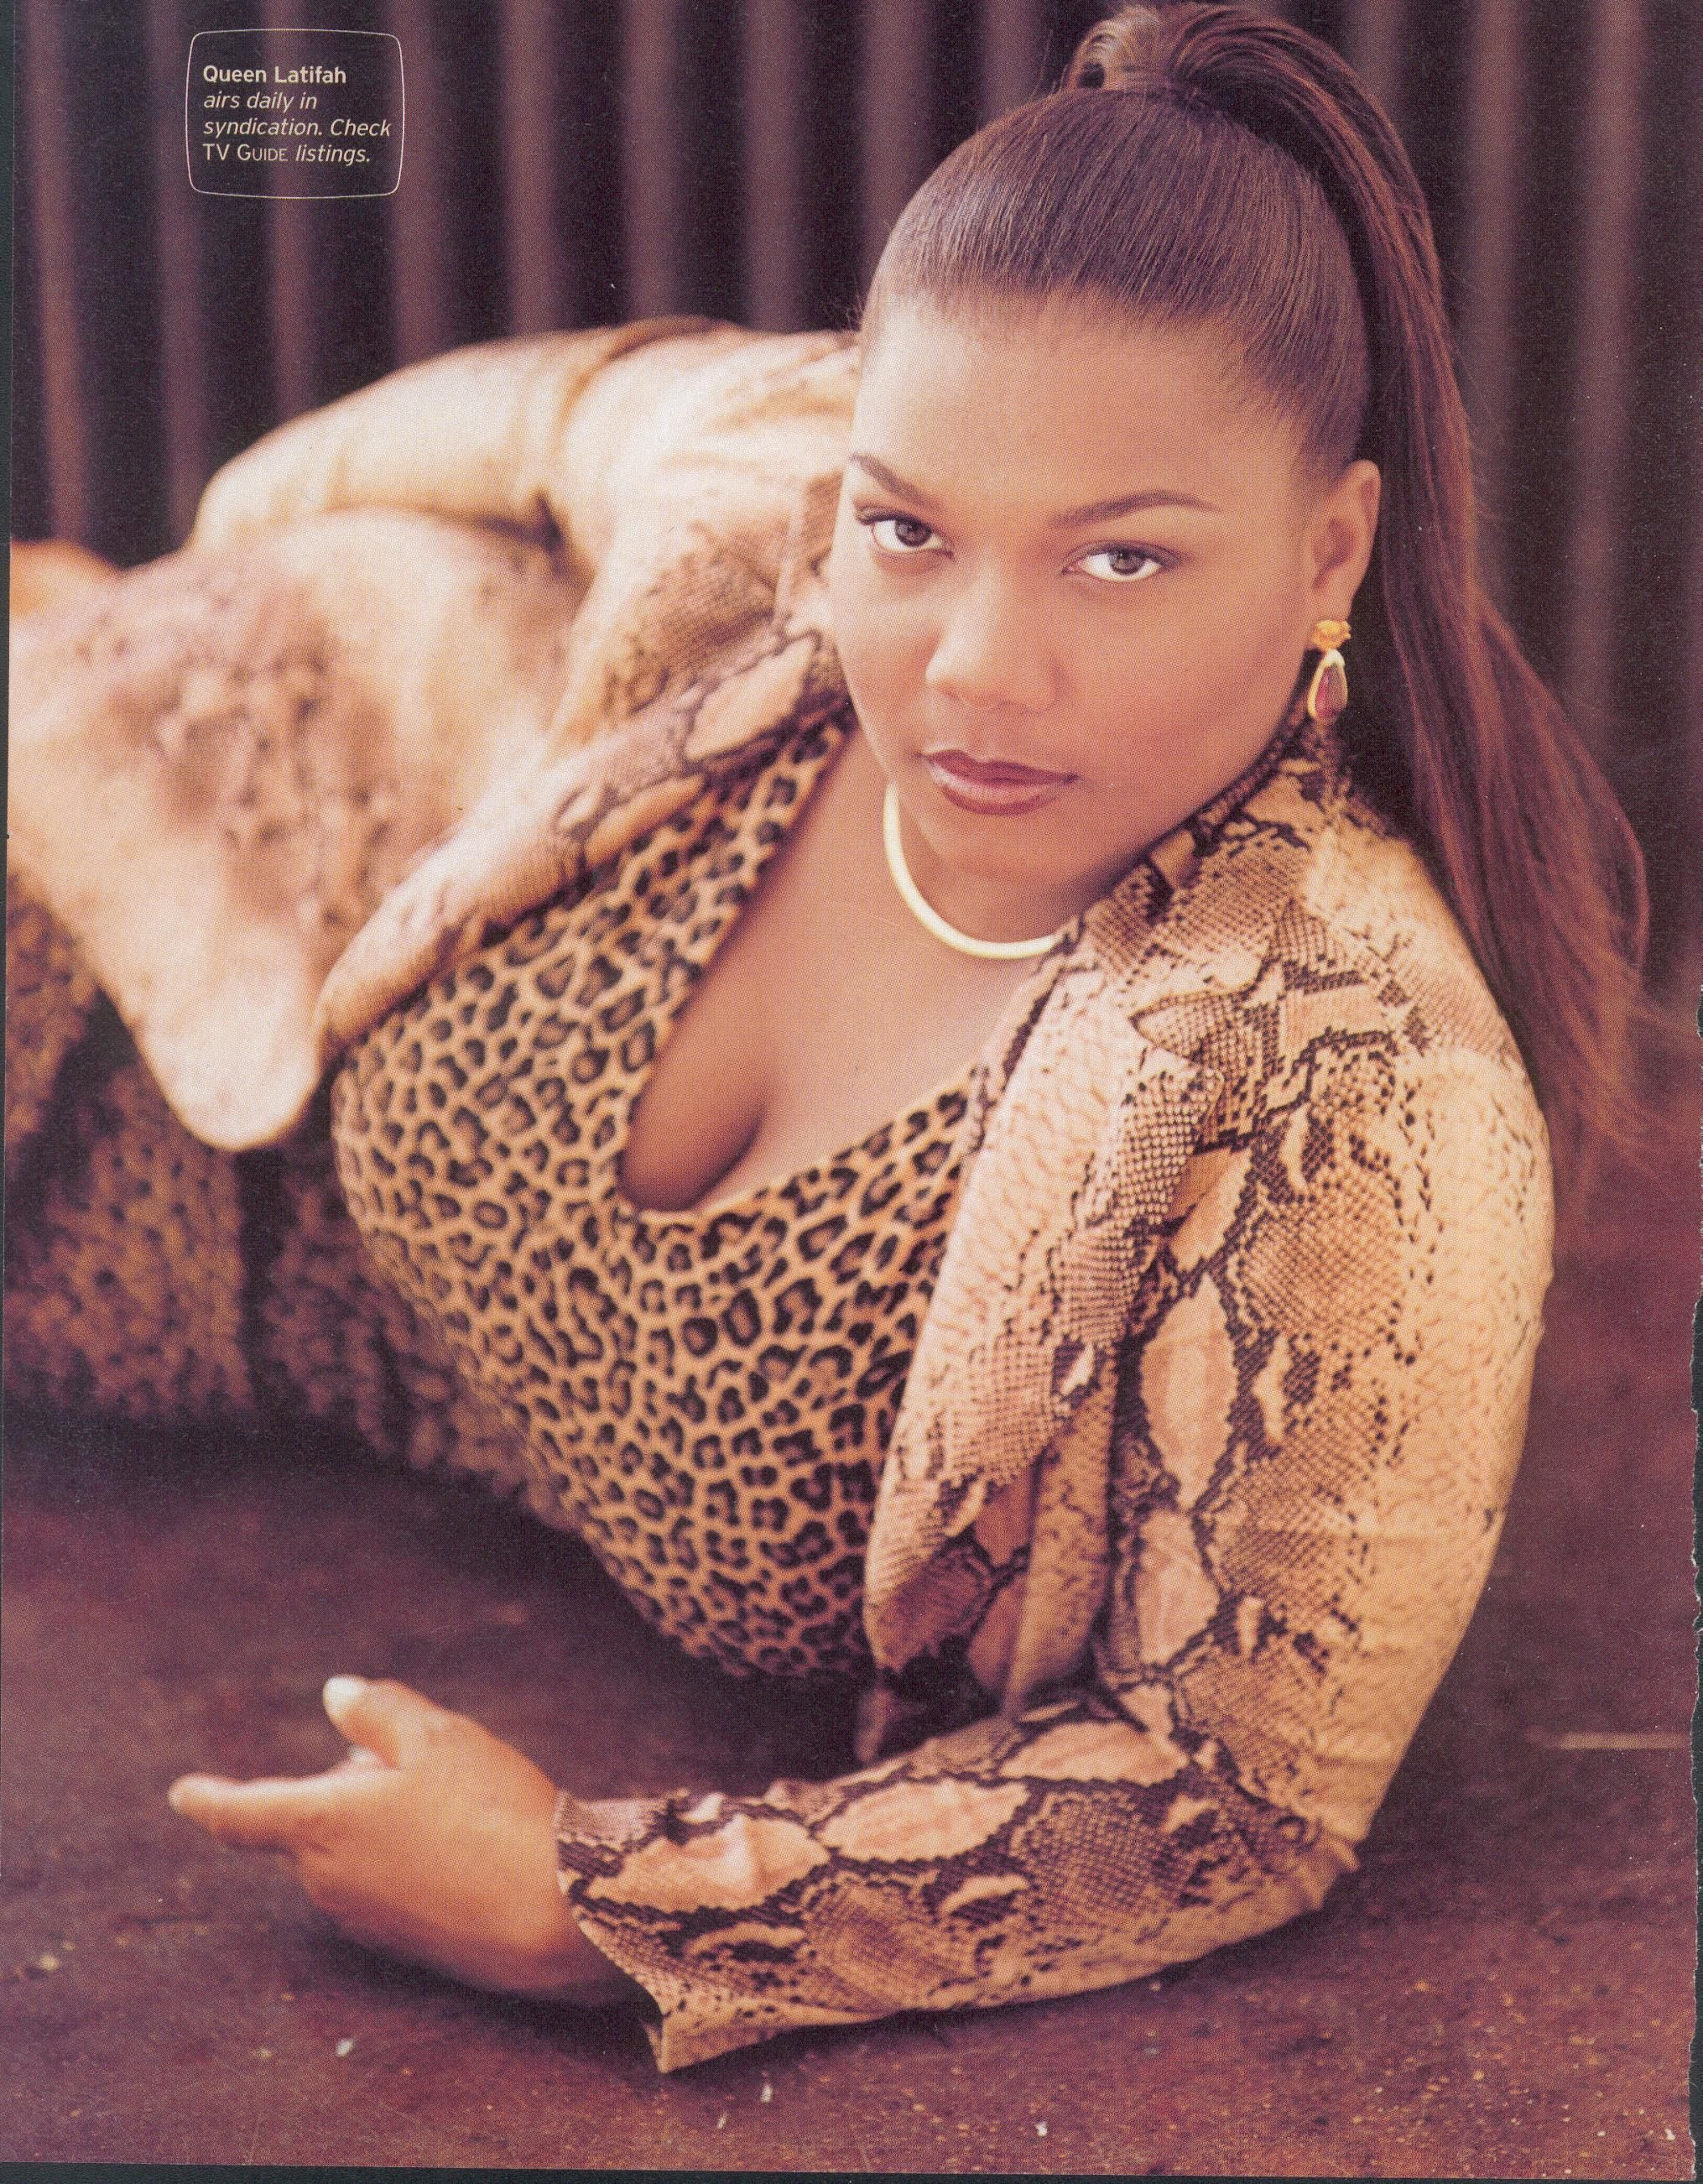 Queen latifah goes naked porn sorry, that